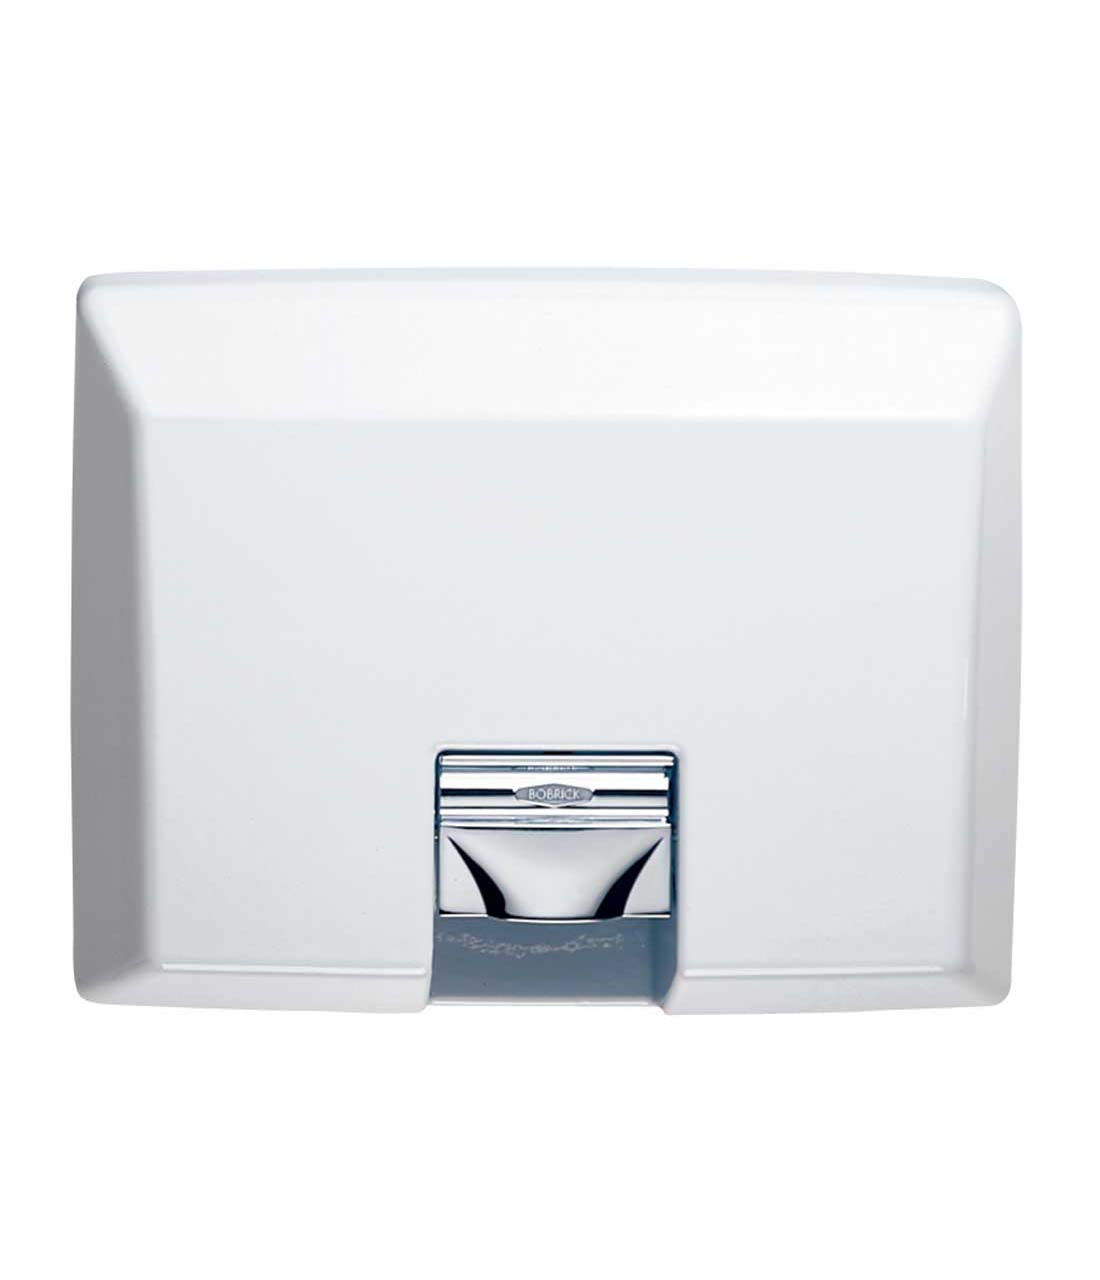 Bobrick Recessed Aircraft Automatic Hand Dryer Part